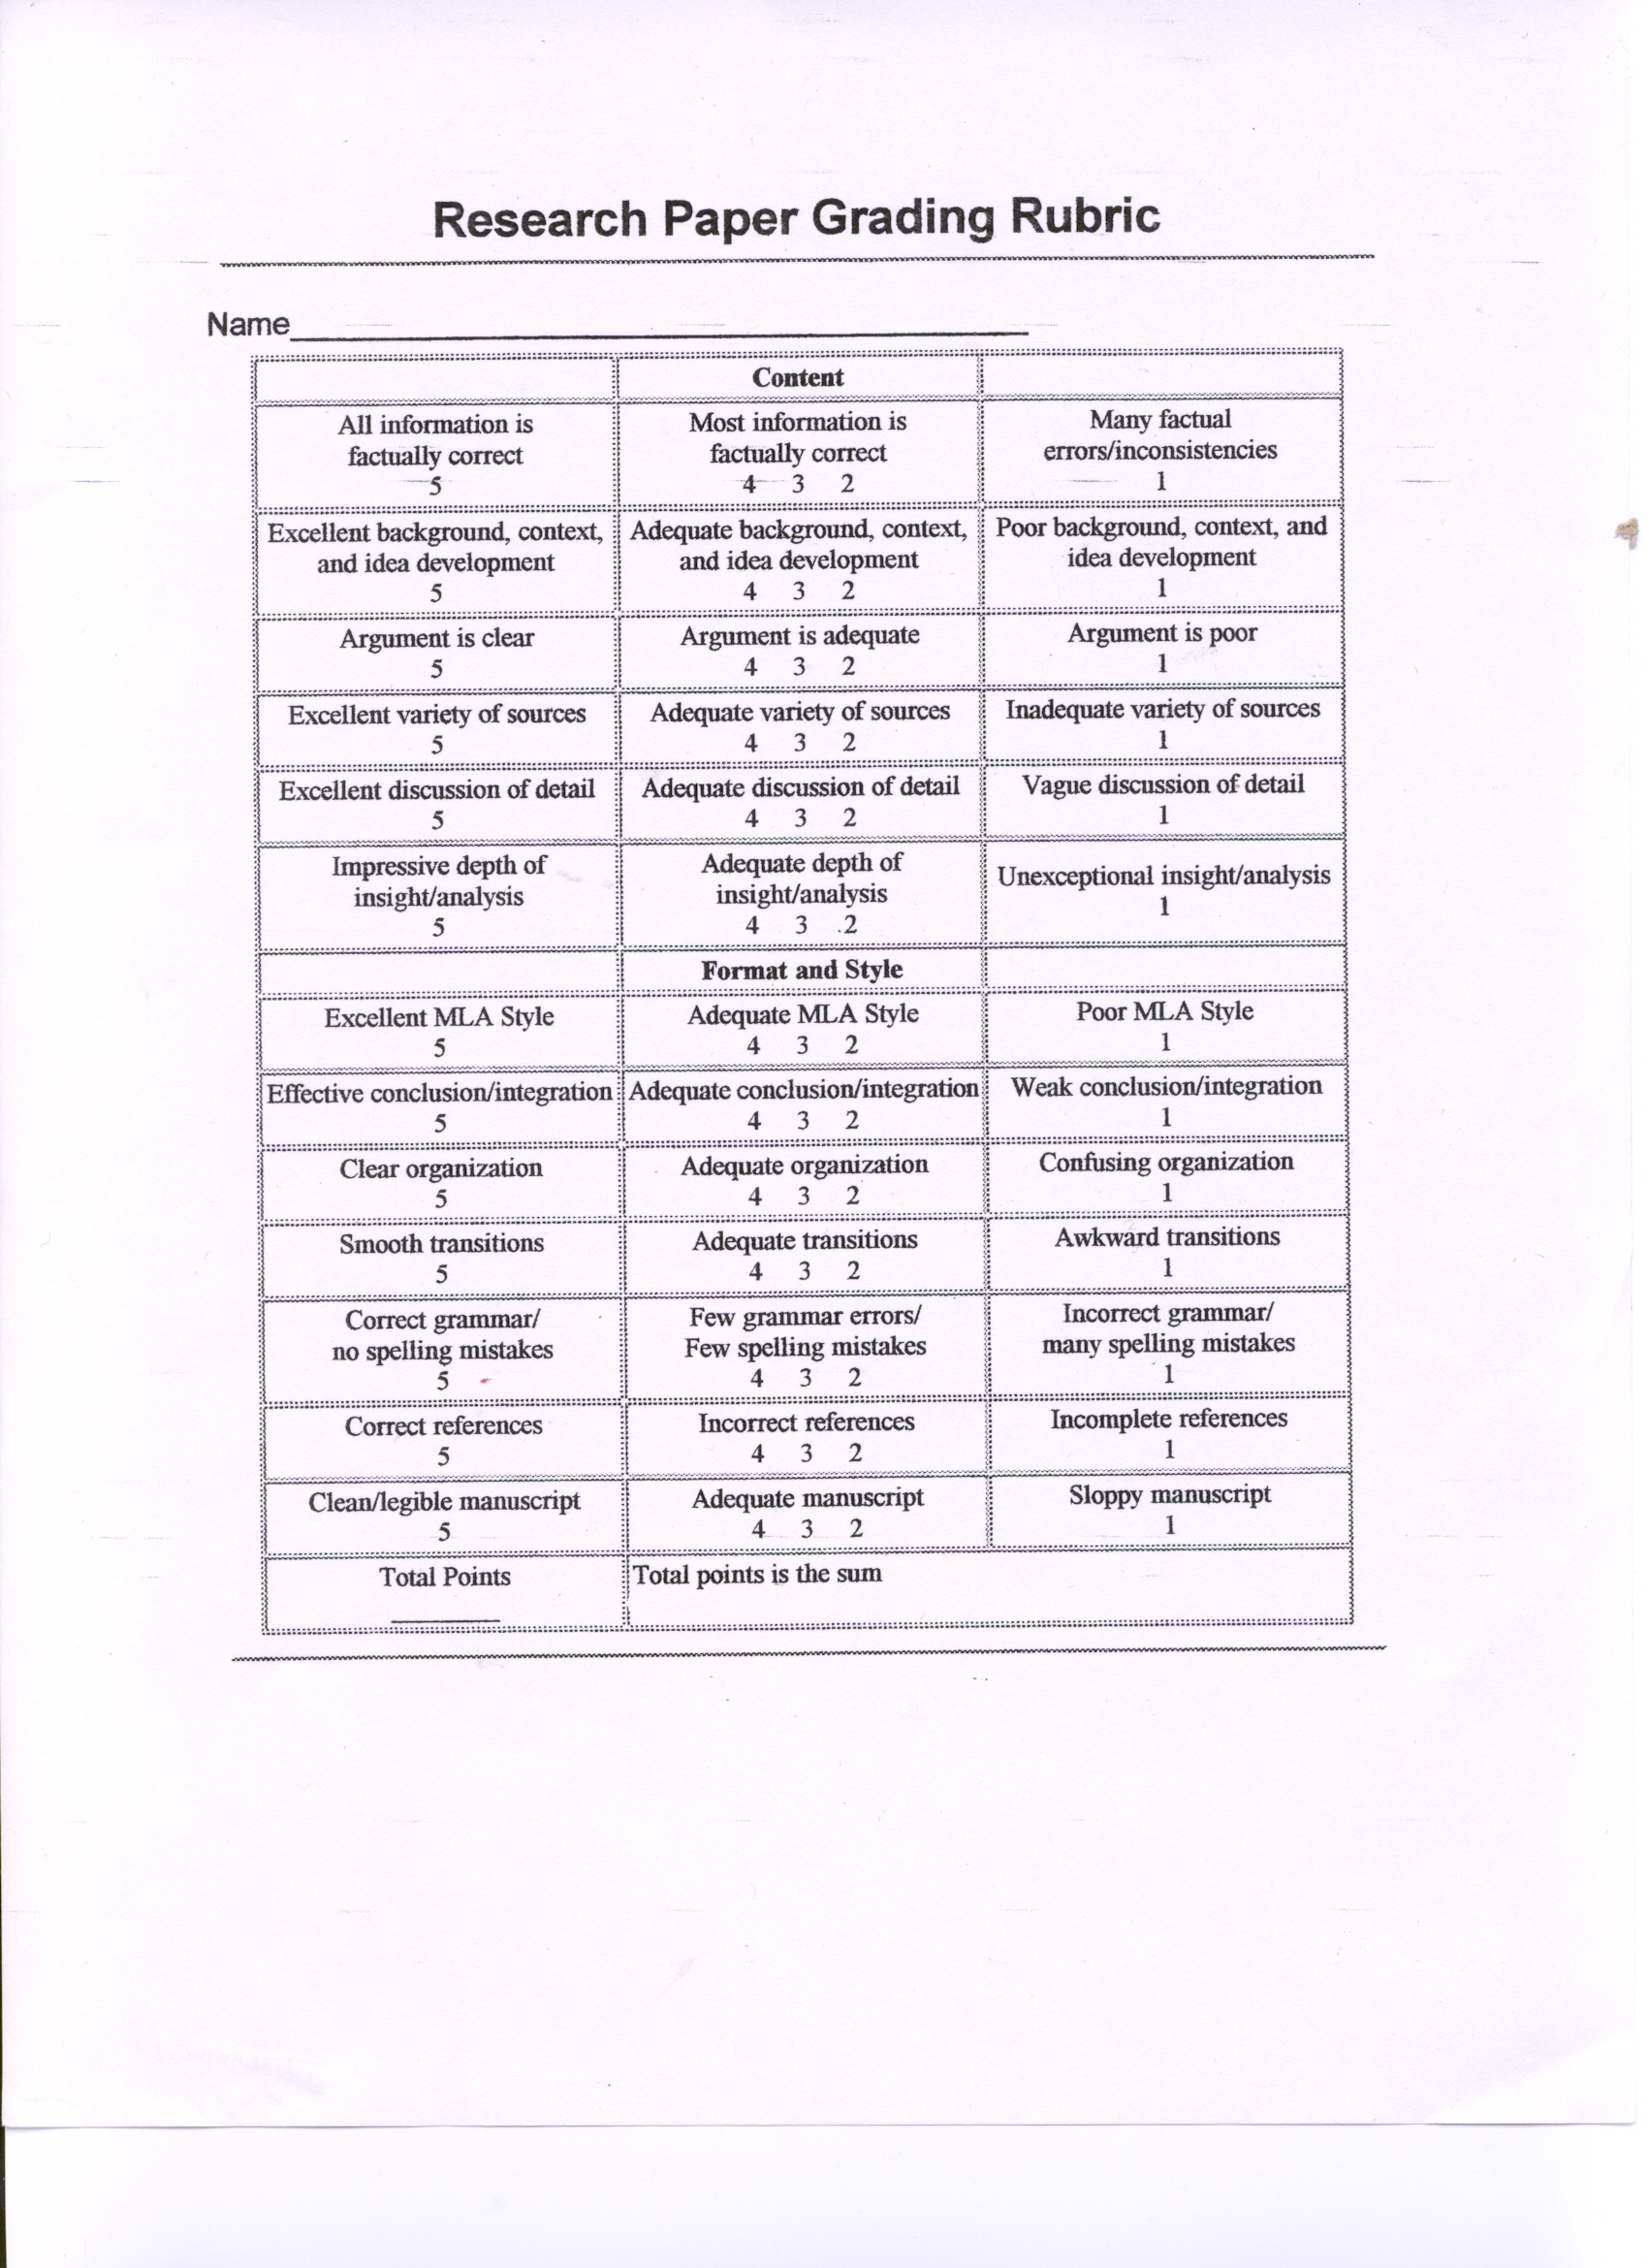 term paper evaluation rubric Addie – evaluation  term/research paper rubric example  here is an example rubric for a term paper from a faculty of arts course: (1) remember your goal is .